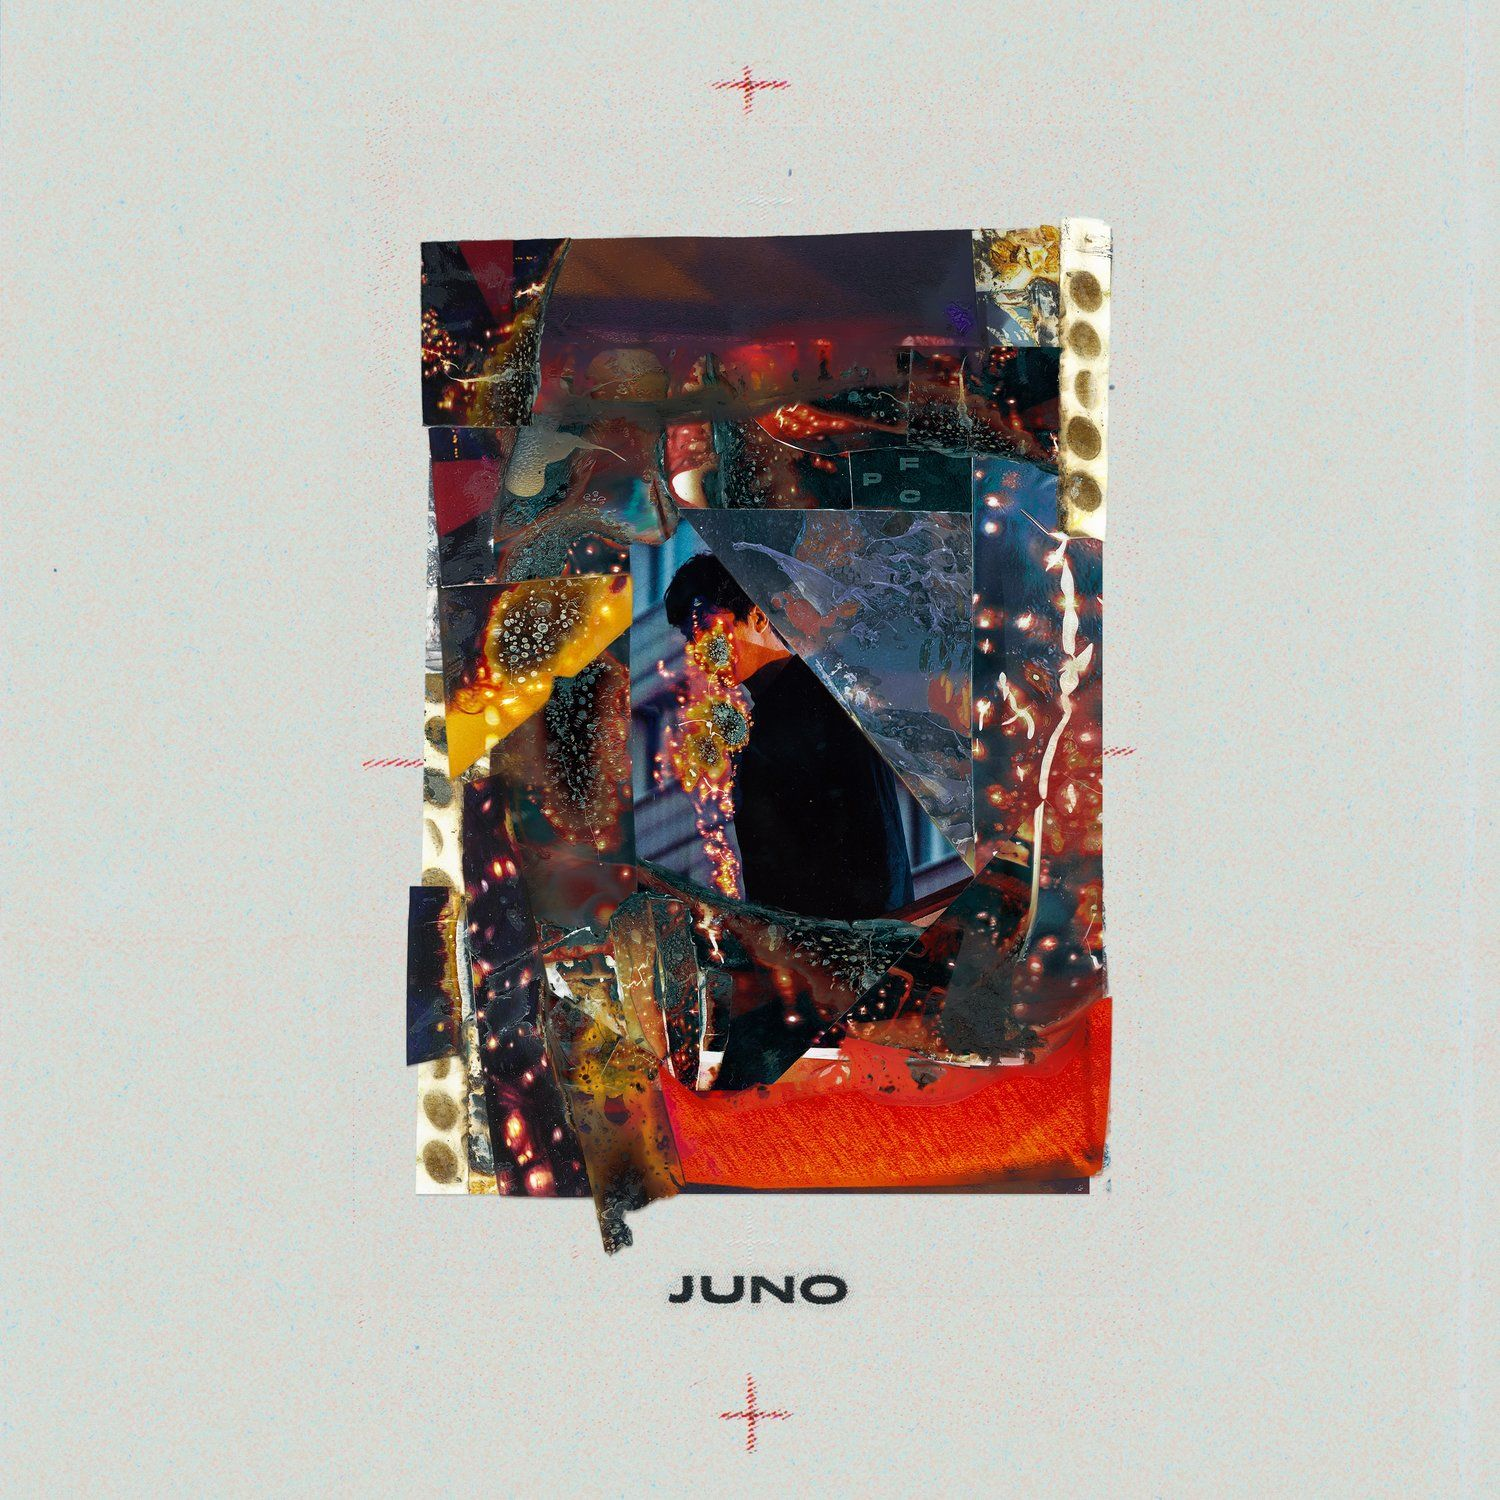 Download Juno on Electrobuzz